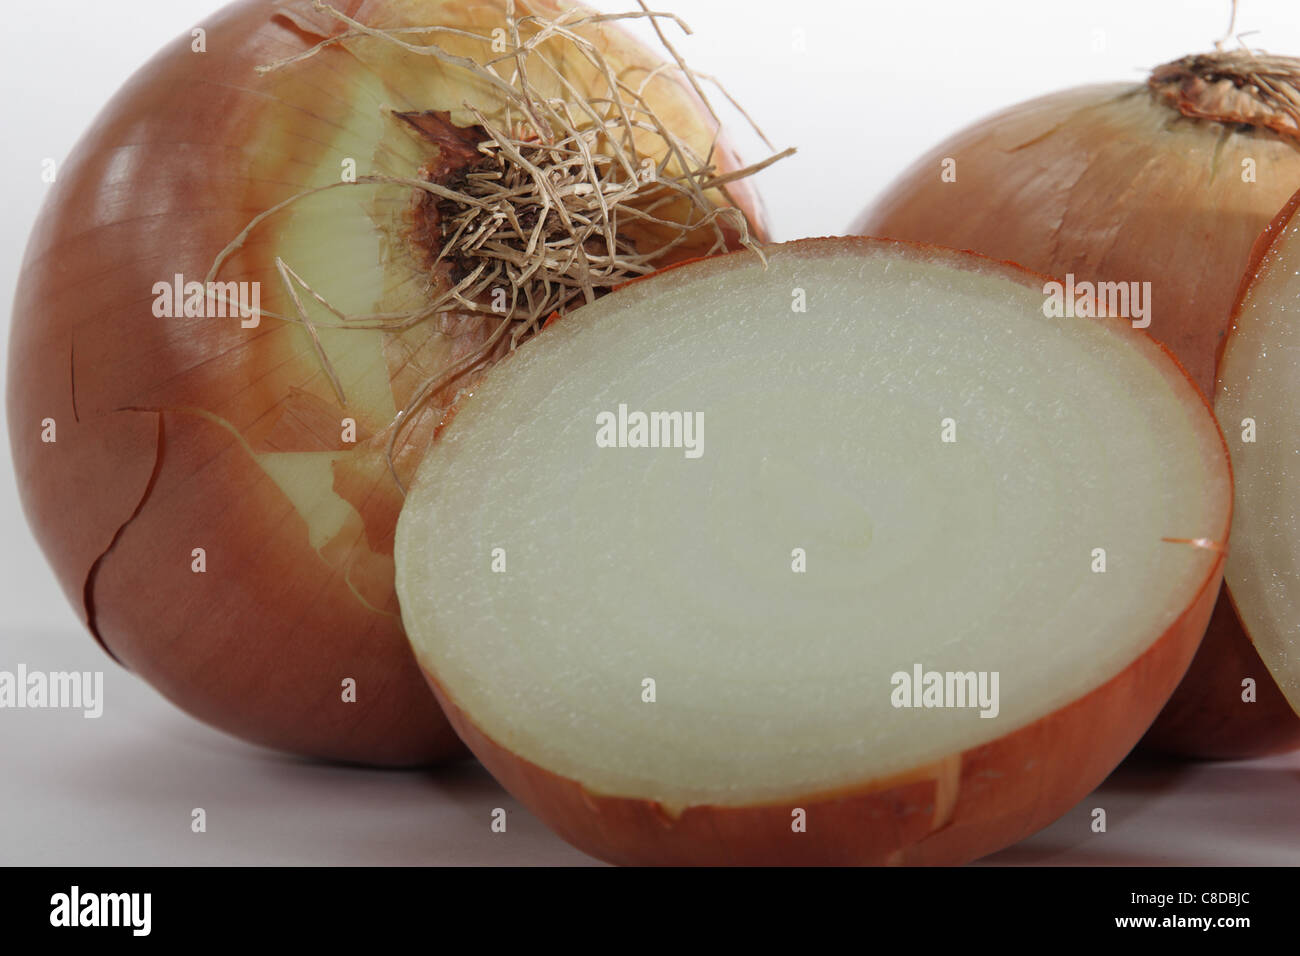 Close up of a freshly cut onion - Stock Image